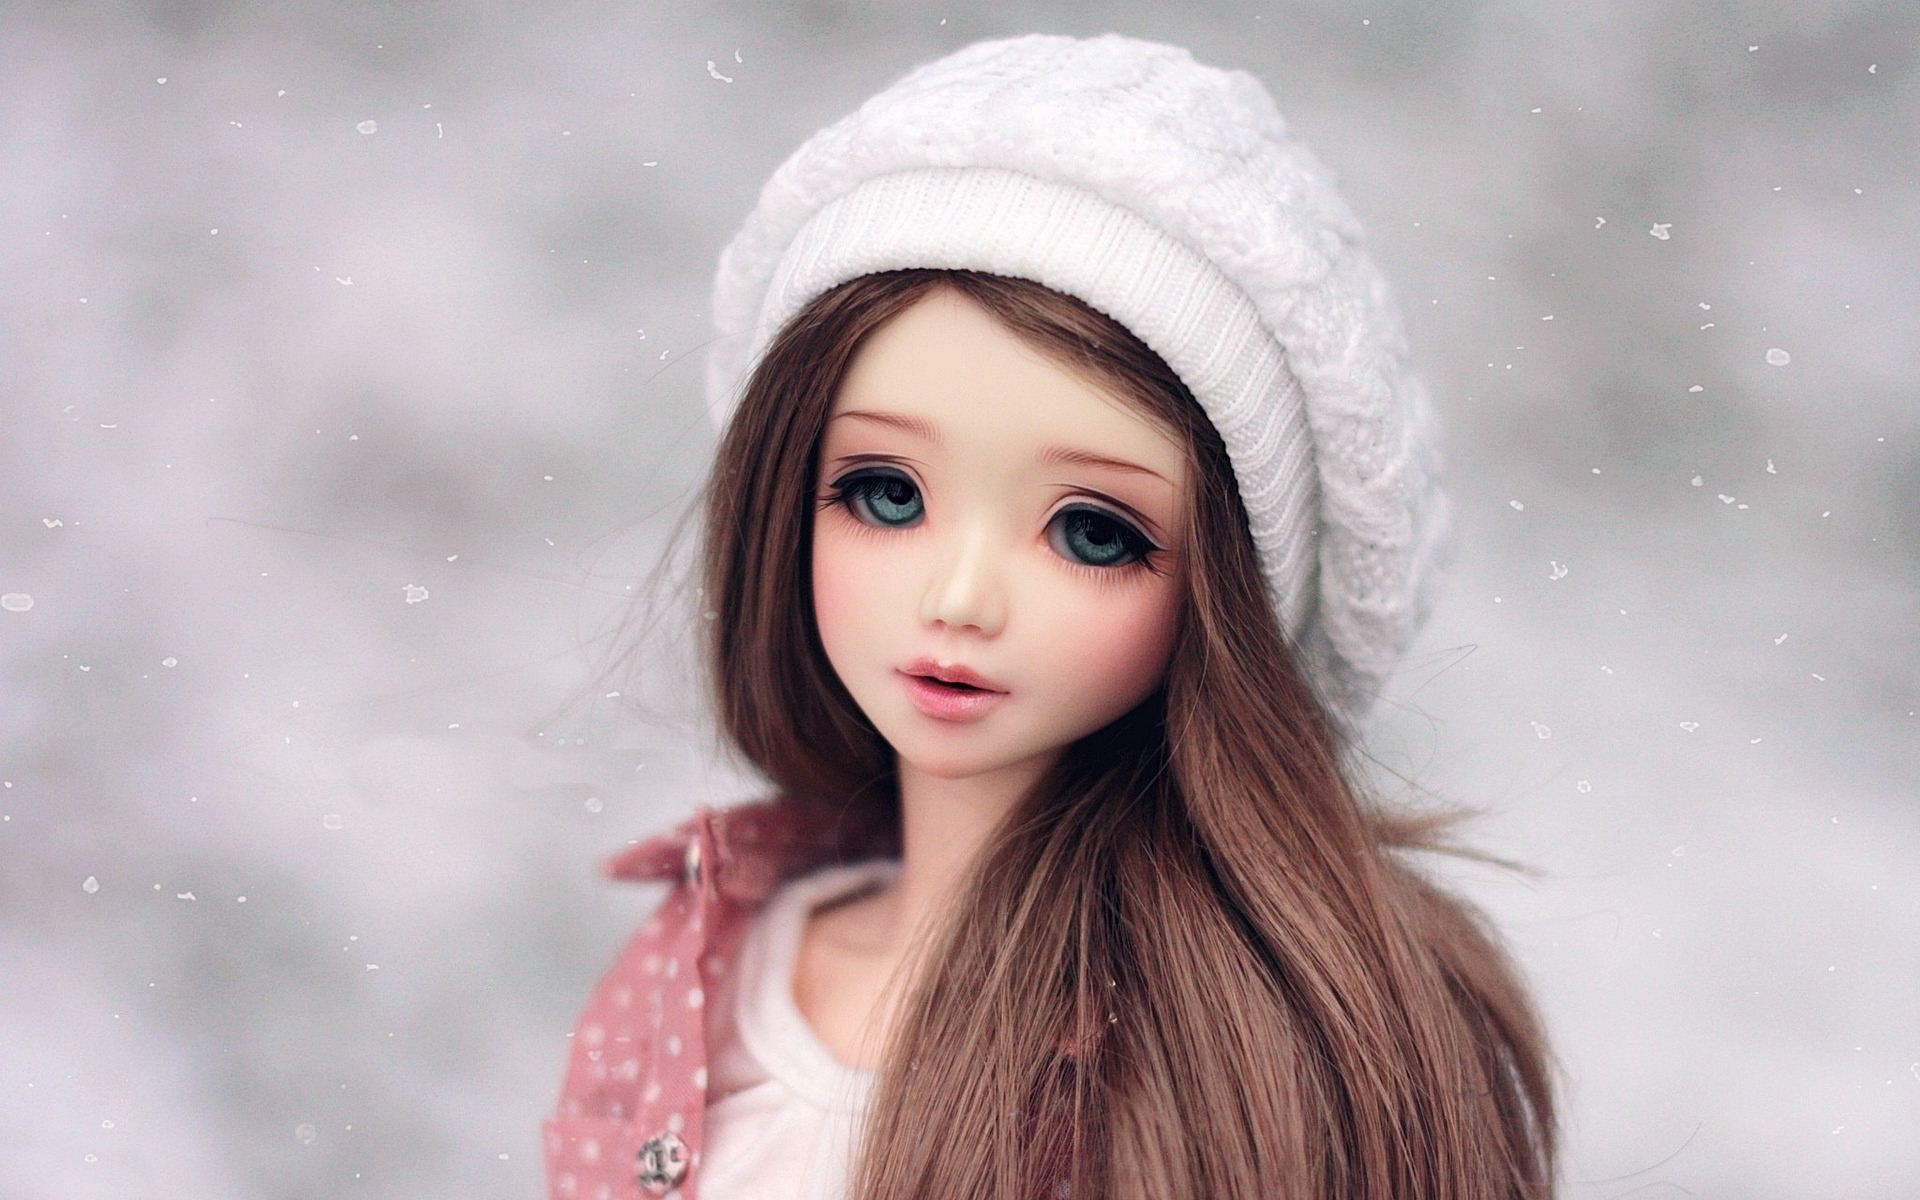 Long Hair Cute Barbie Doll in Winter Cap Full HD wallpaper Image Photo 1920x1200